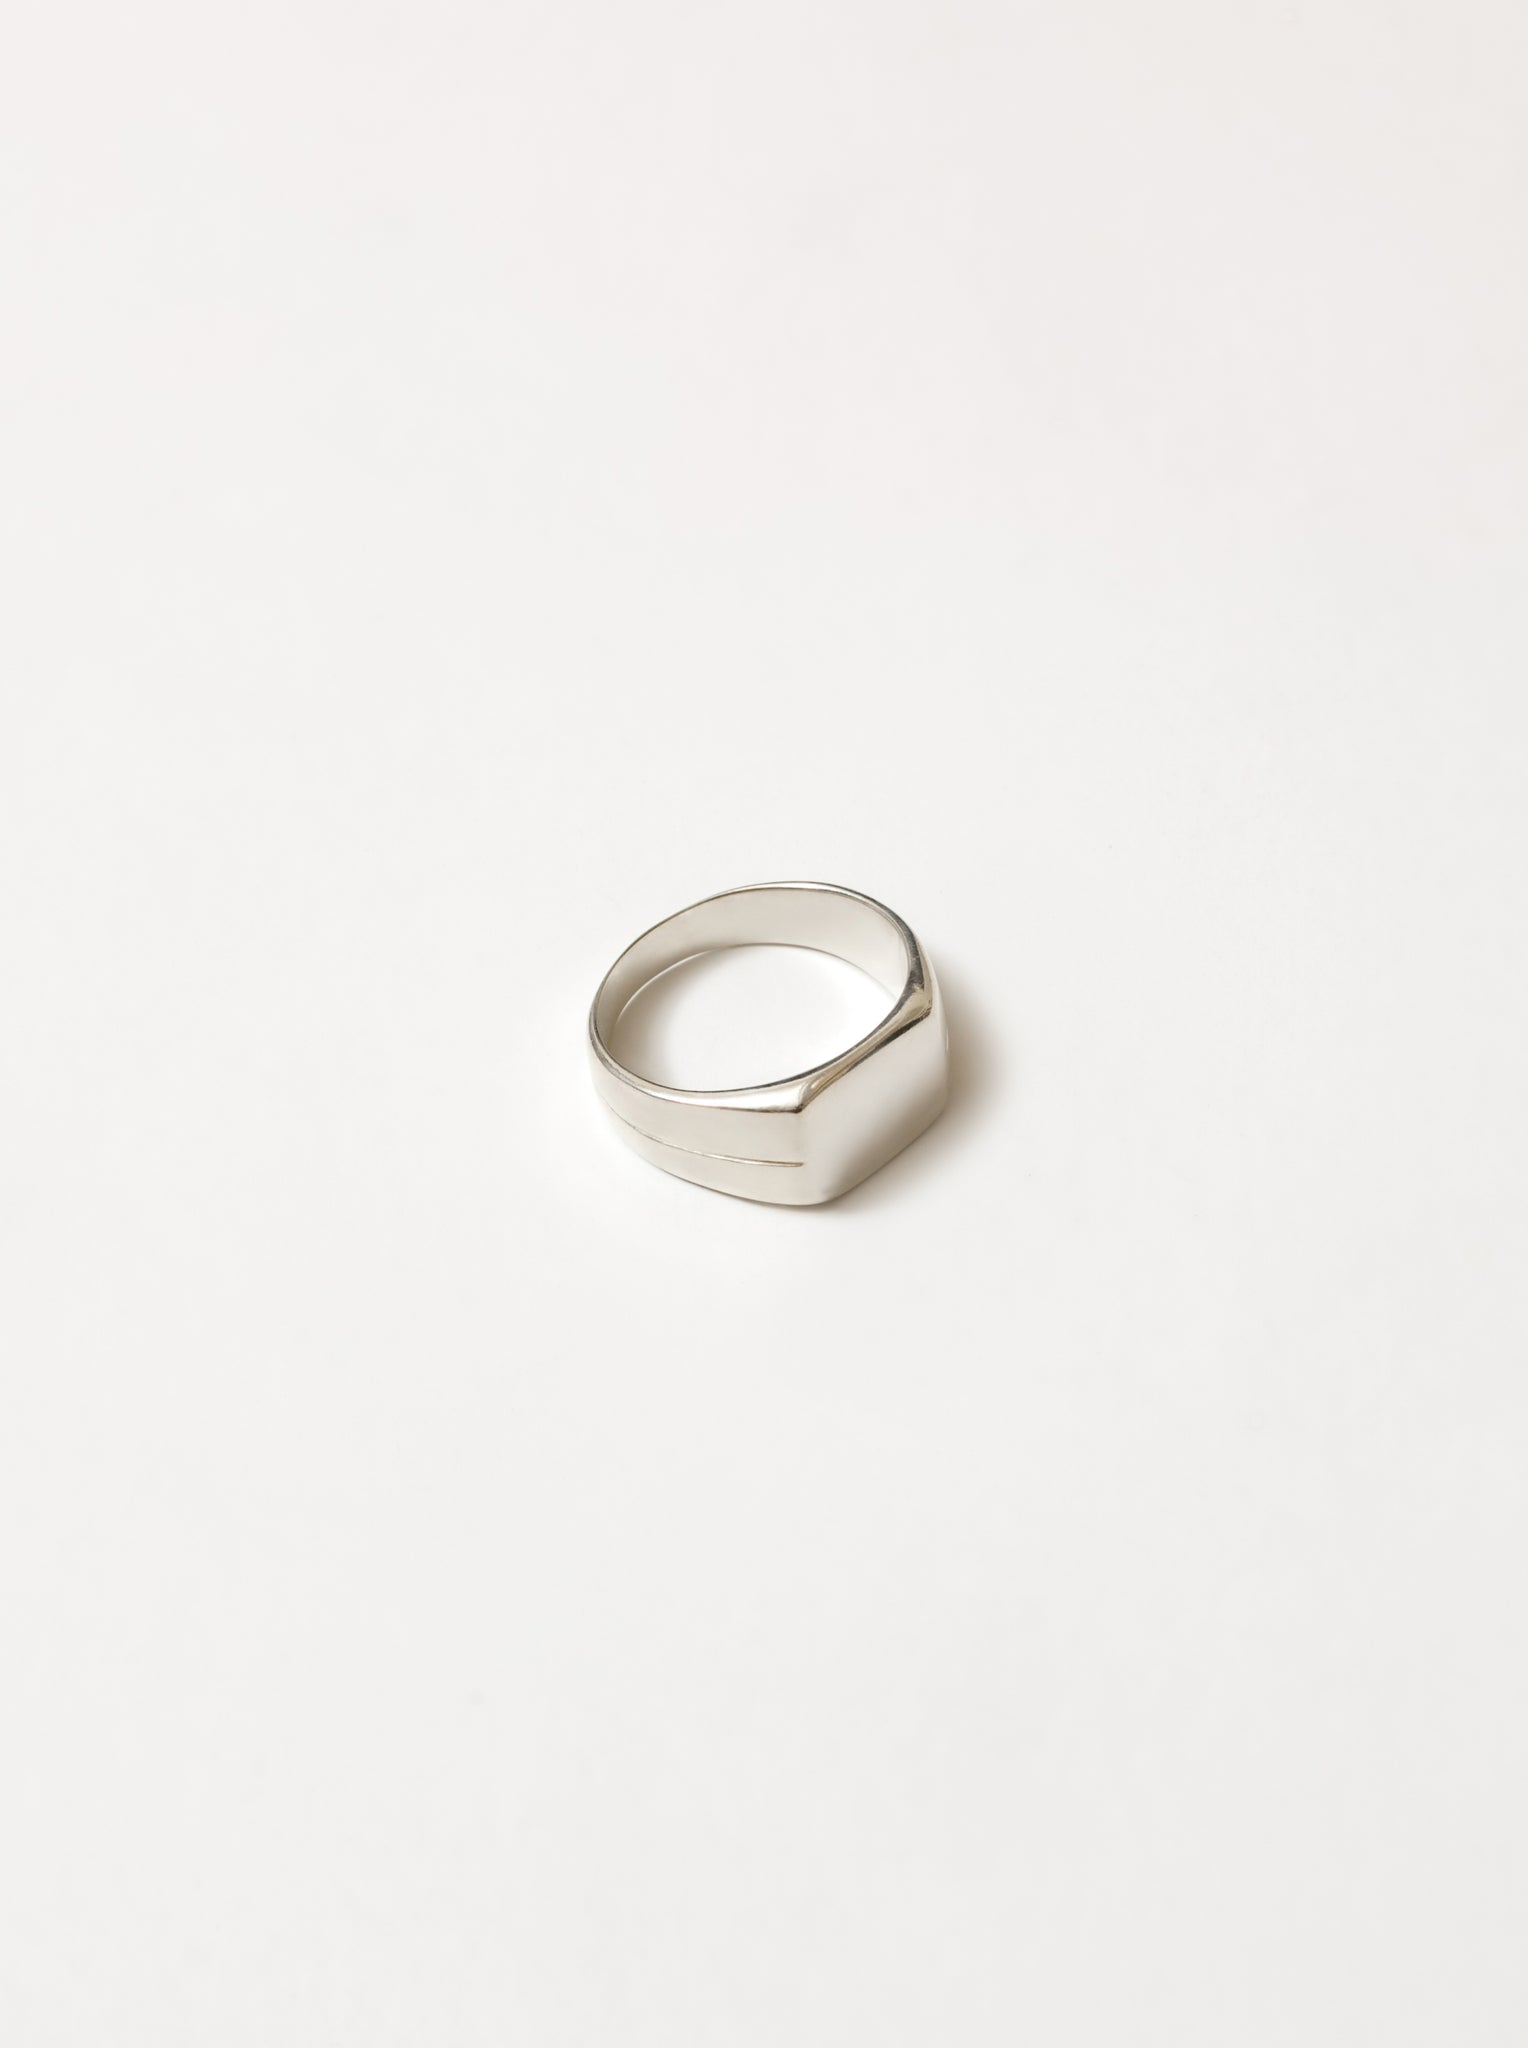 Gino Signet Ring in Sterling Silver